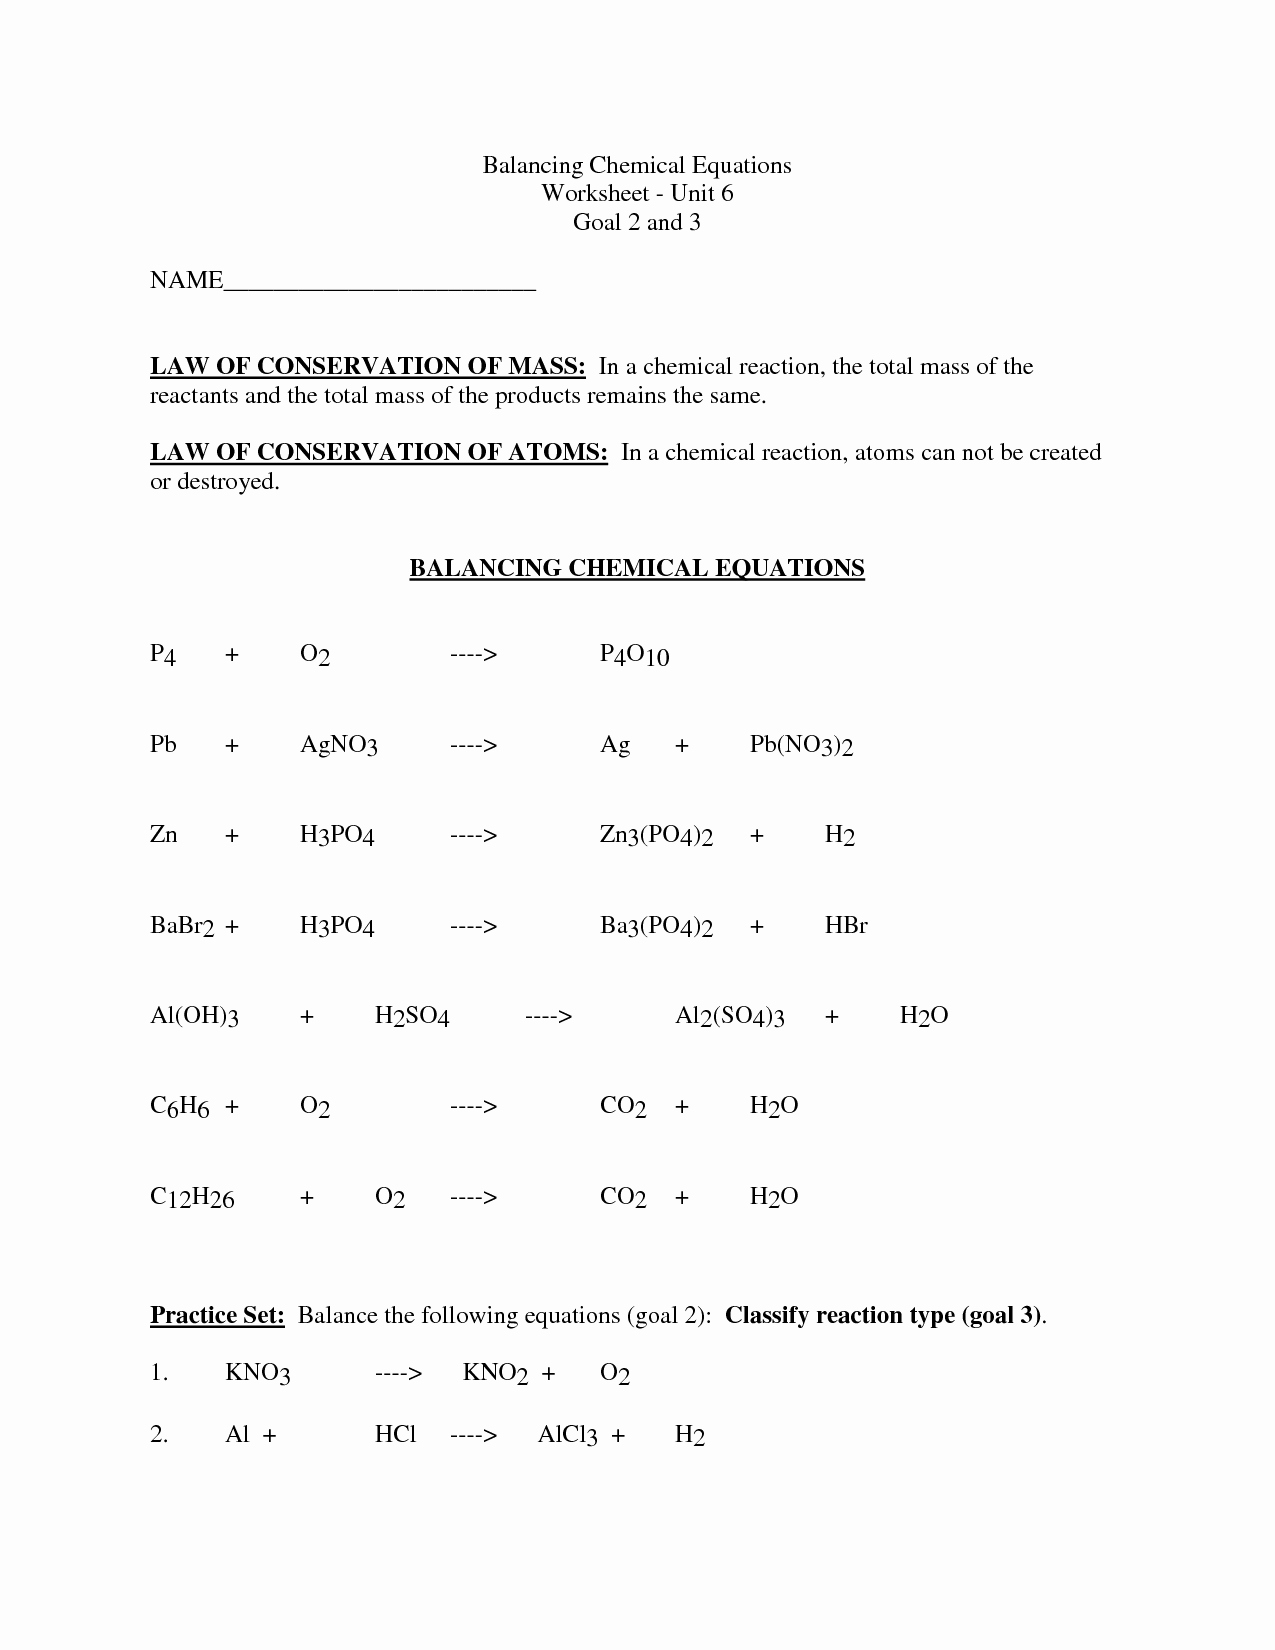 Balancing Equations Worksheet Answers Elegant 12 Best Of Balancing Chemical Equations Worksheet